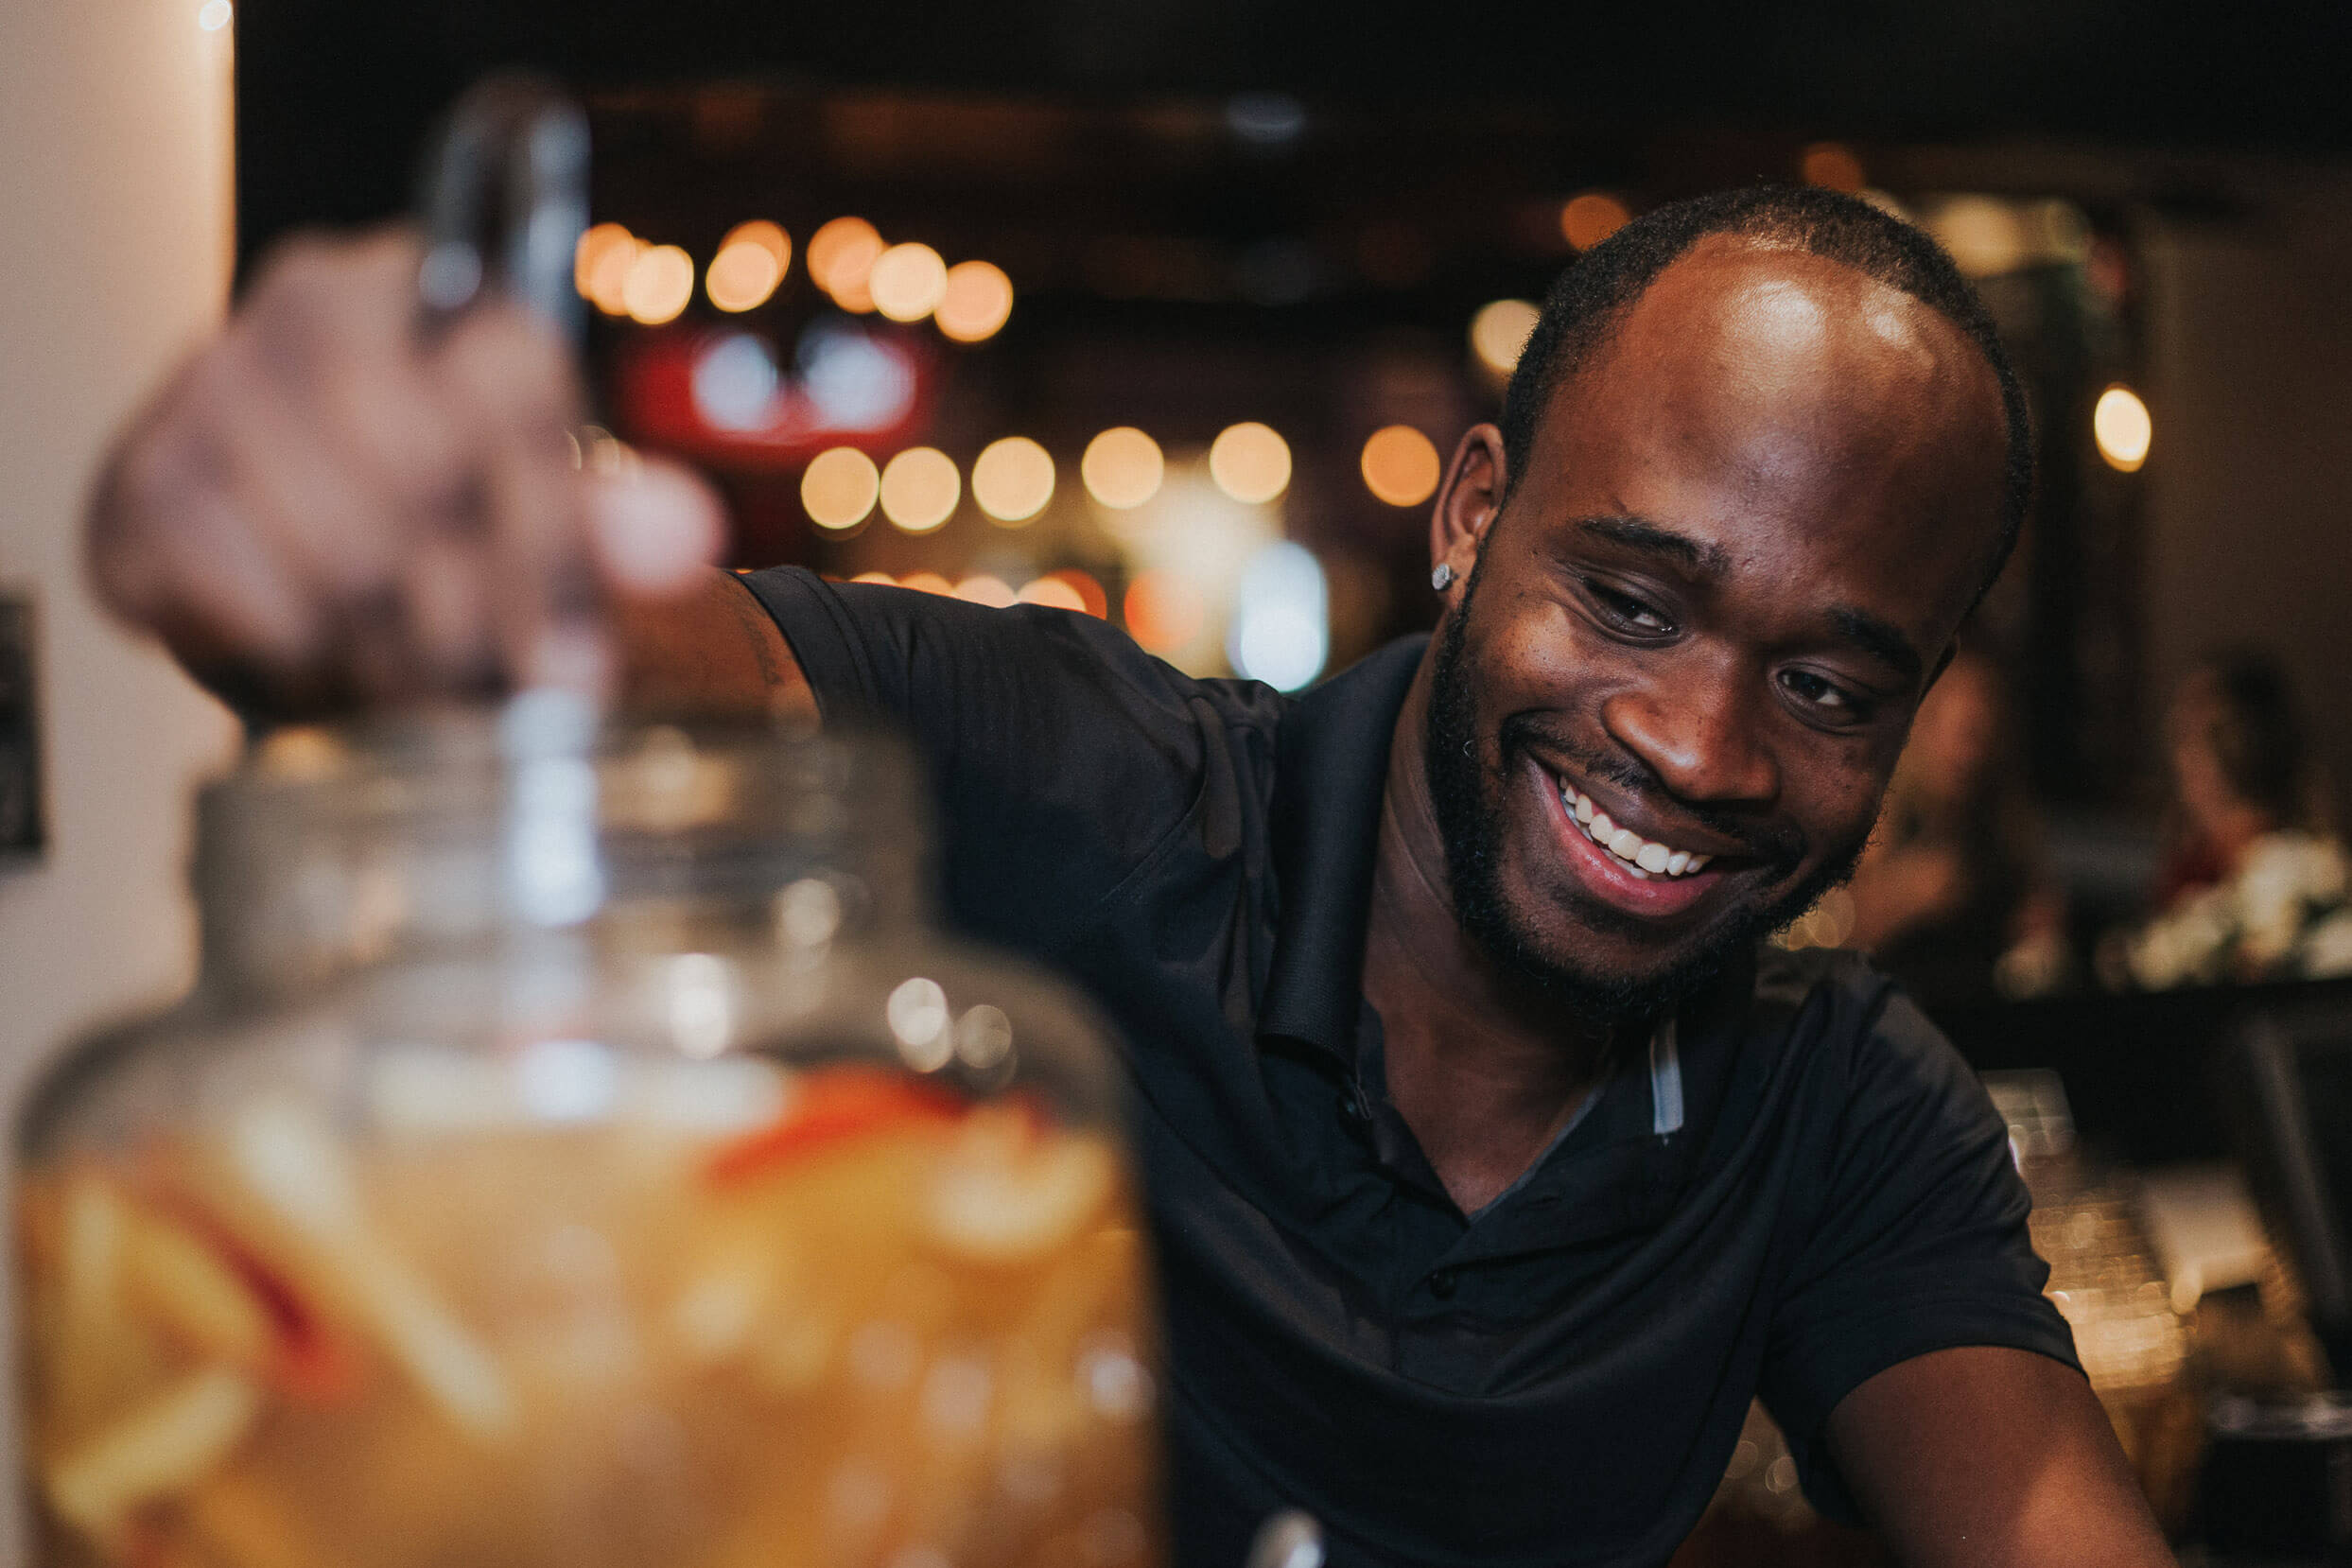 smiling man stirring a glass jar of Jack Daniels cocktail